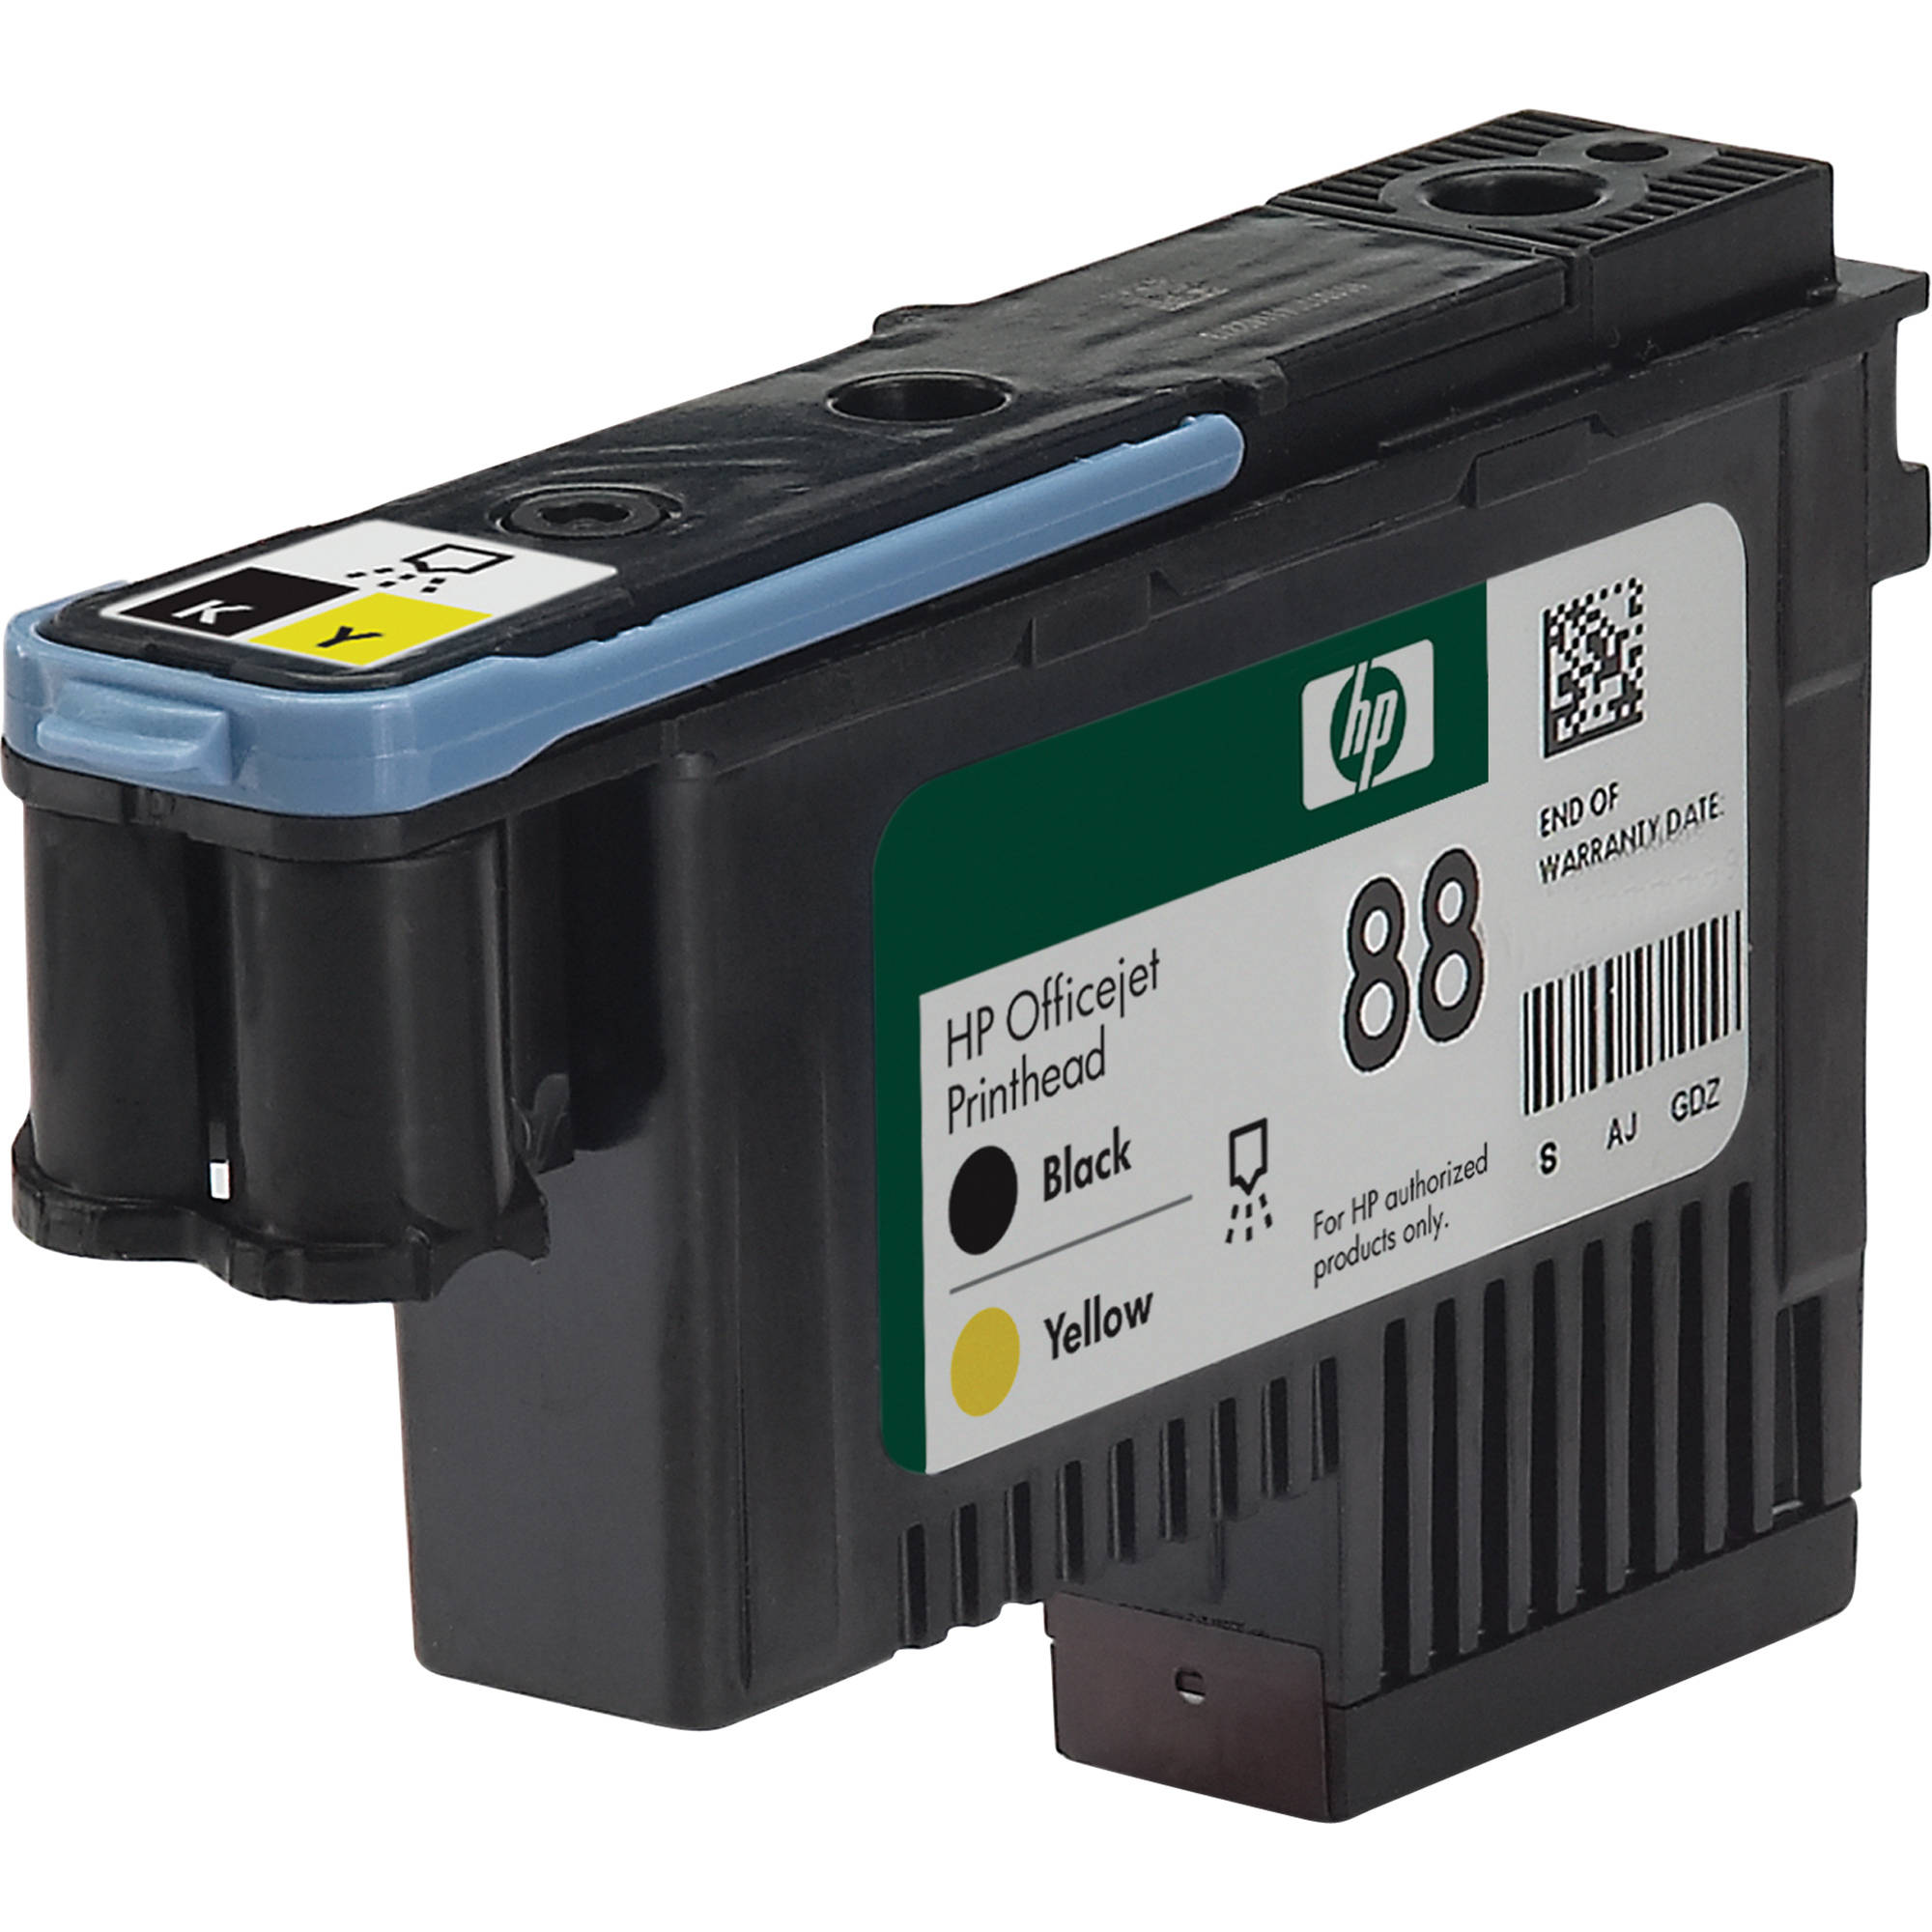 HP K5400DTN DRIVERS DOWNLOAD